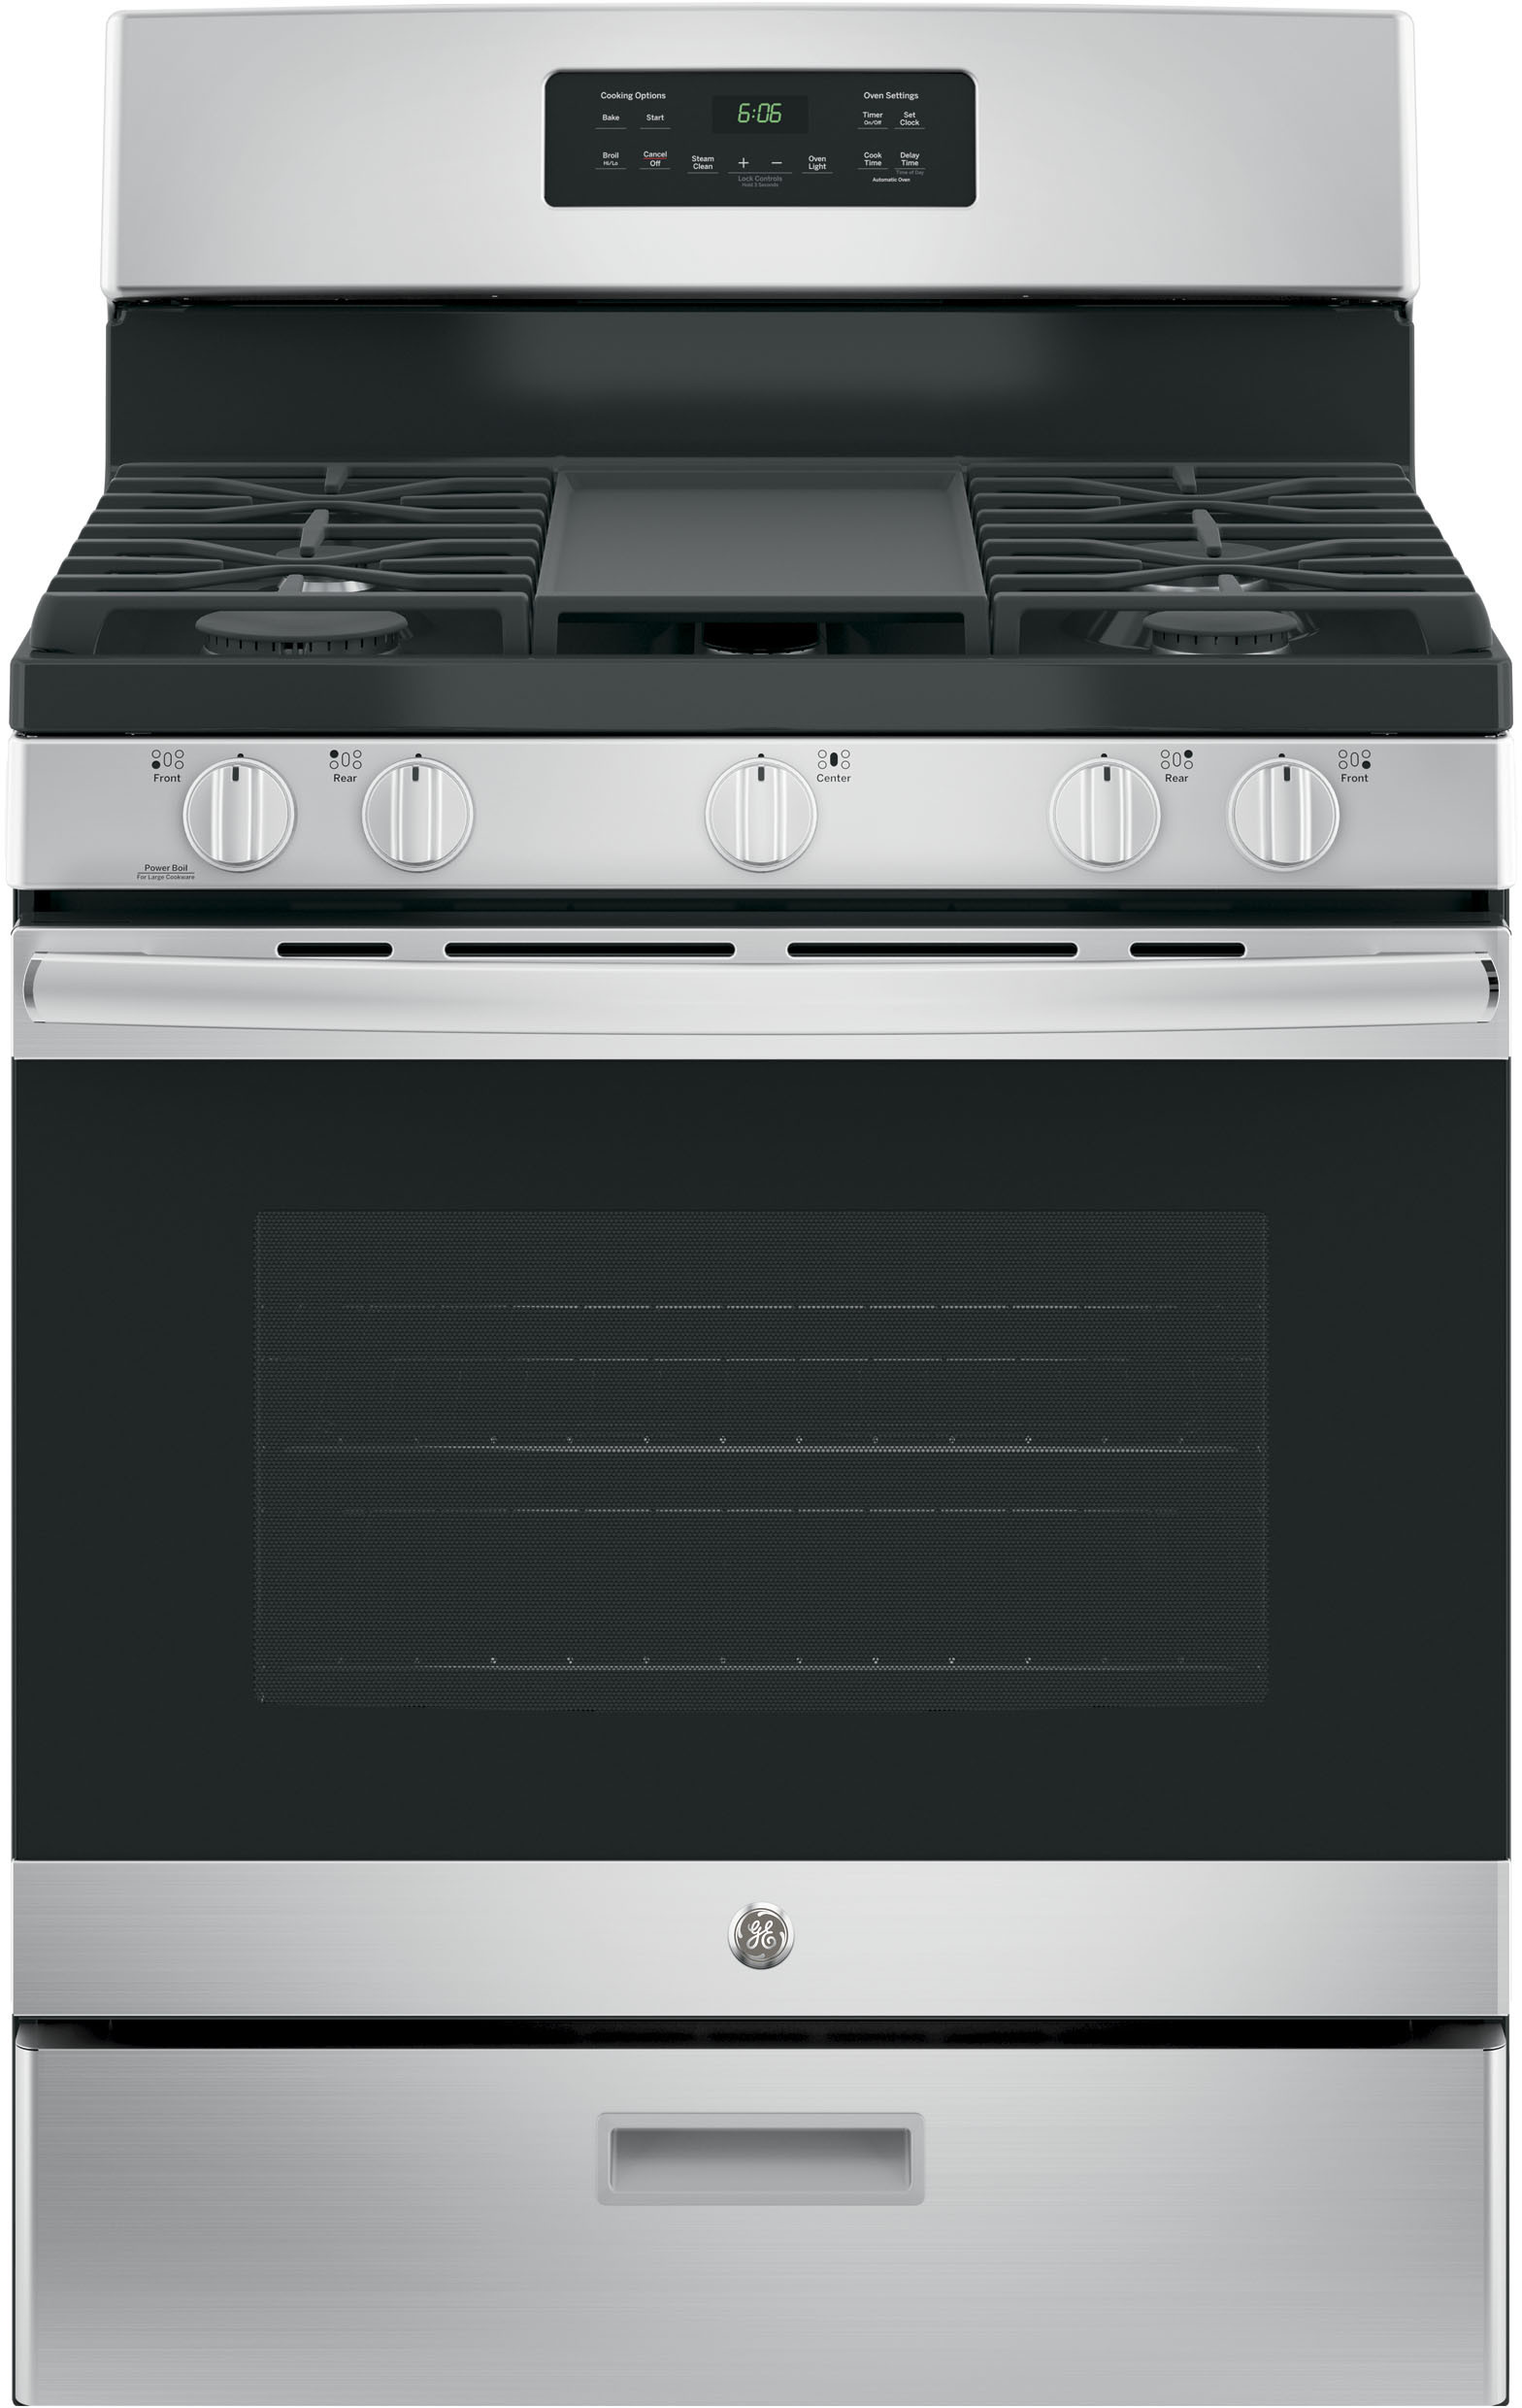 Ge Jgbs66rekss 30 Inch Free Standing Gas Range With 5 Sealed